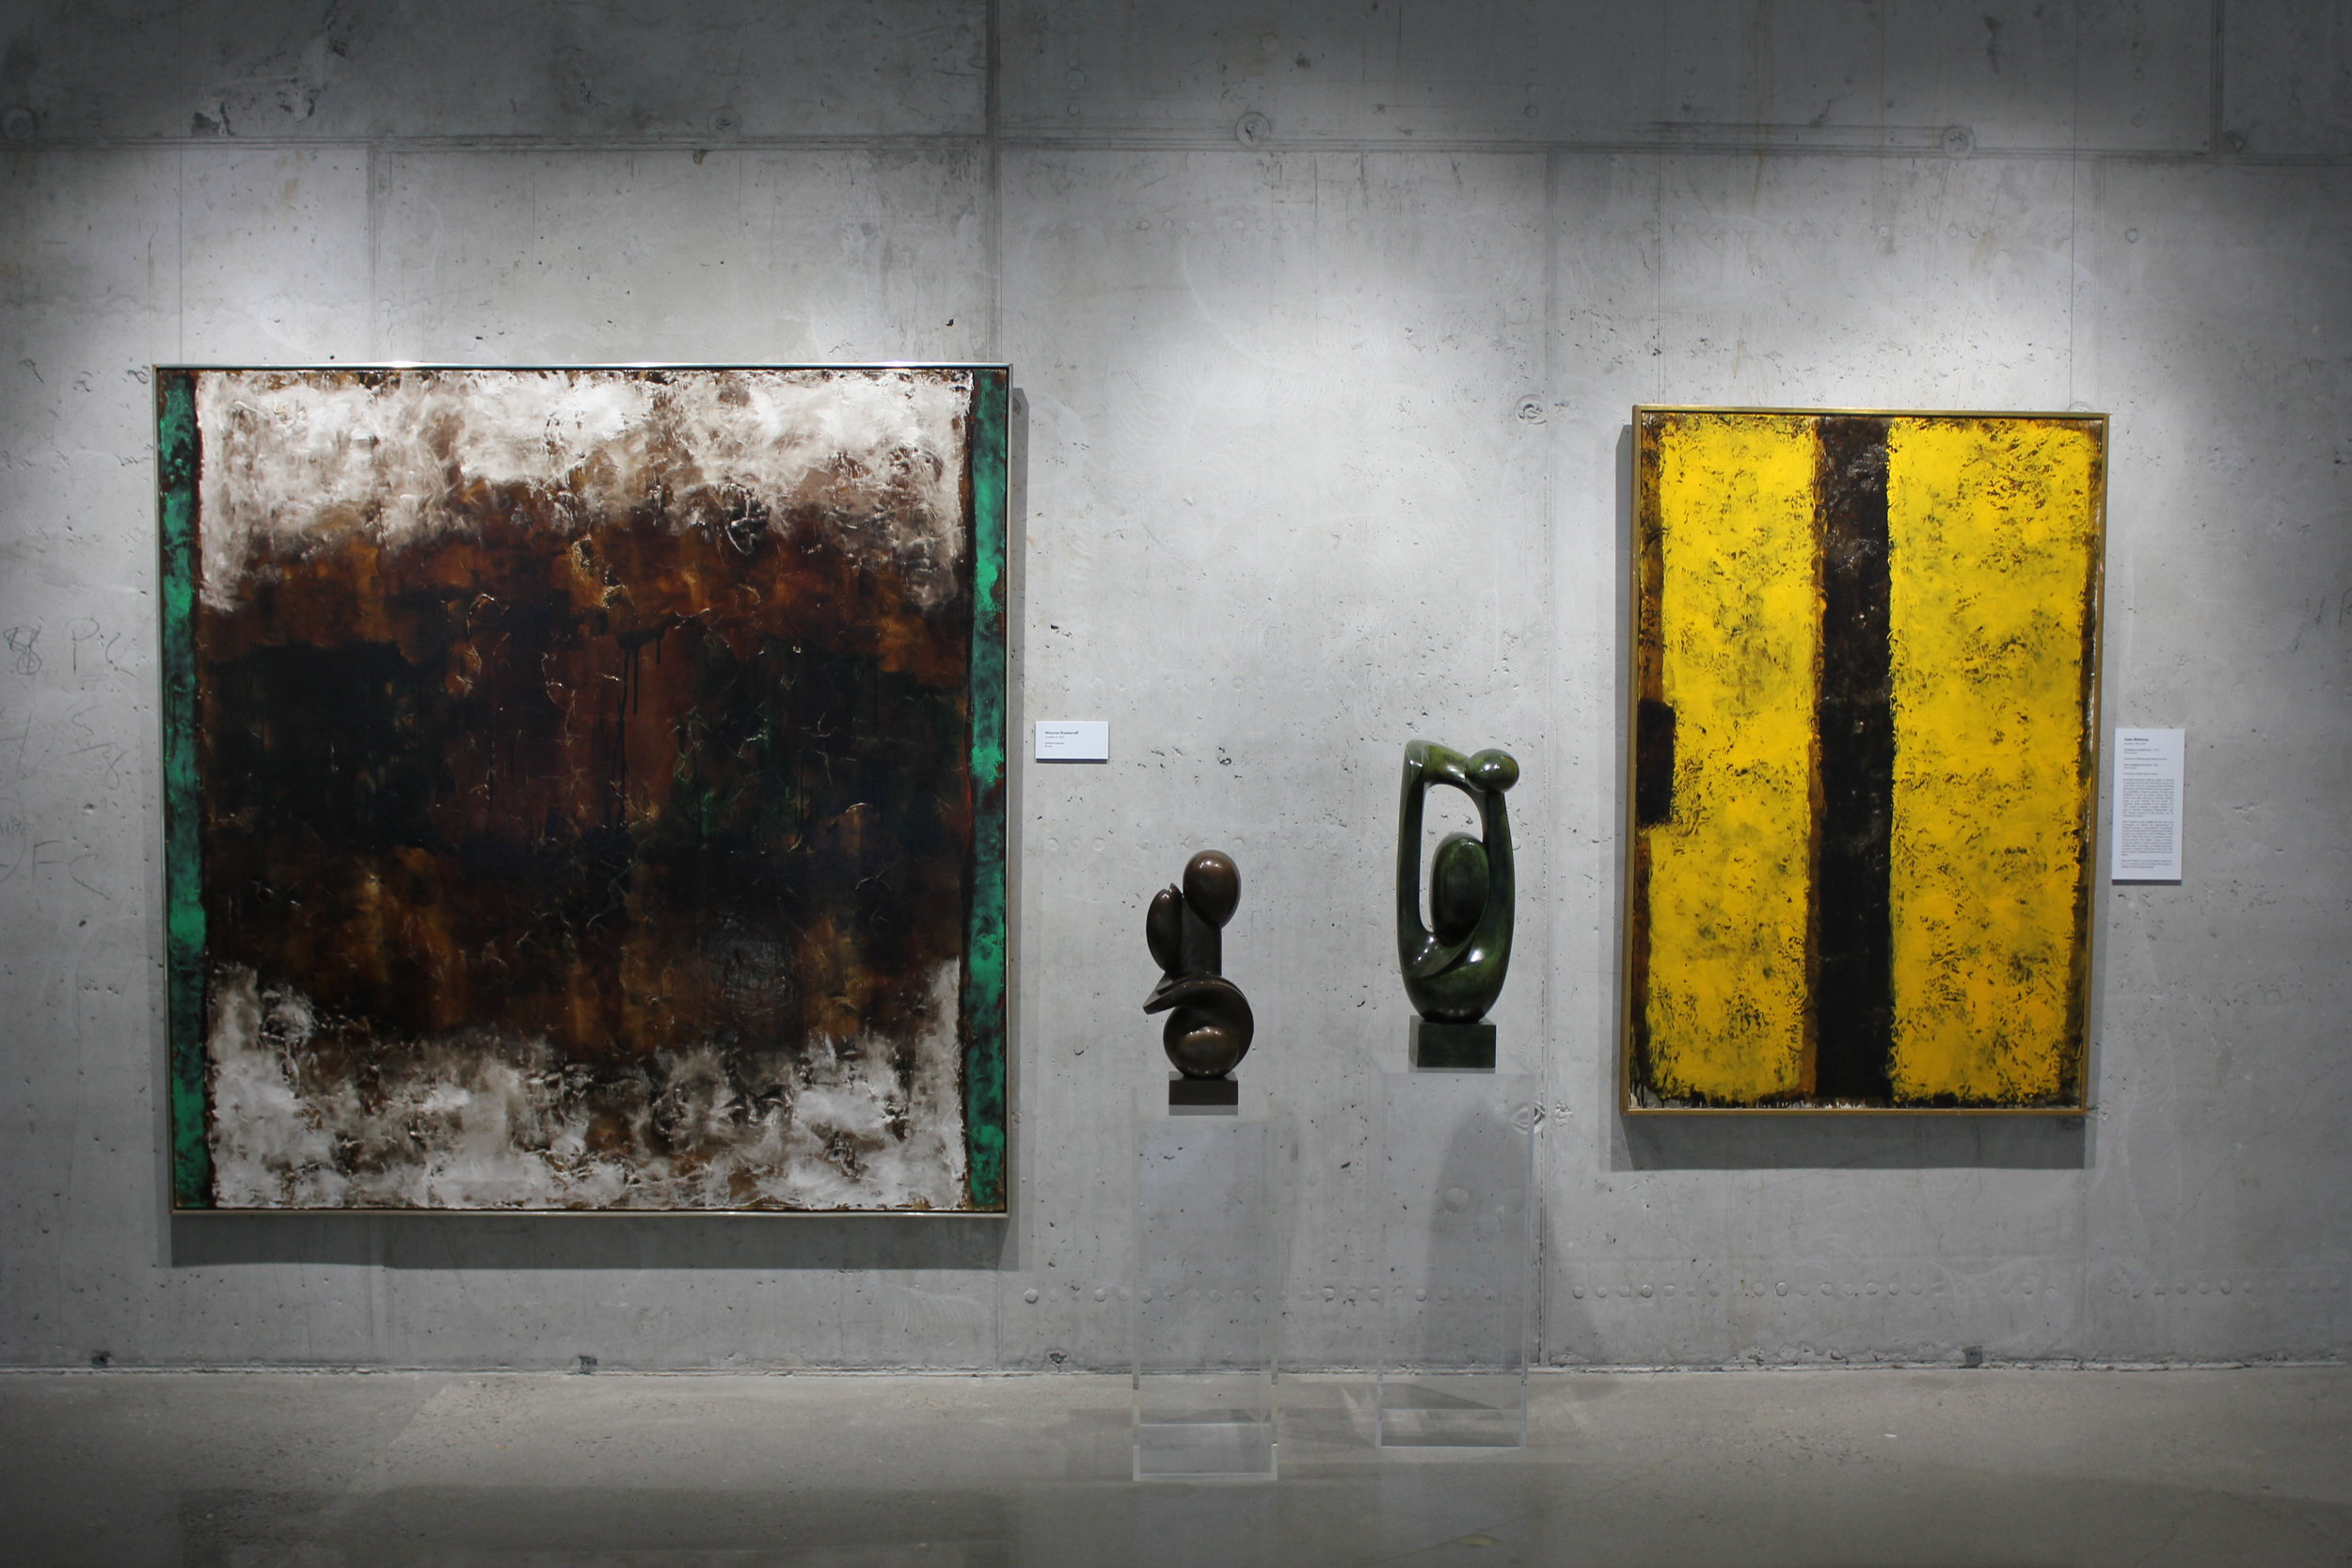 Jean McEwen, on view at the Zwig Foundation Collection with two sculptures by Maryon Kantaroff.